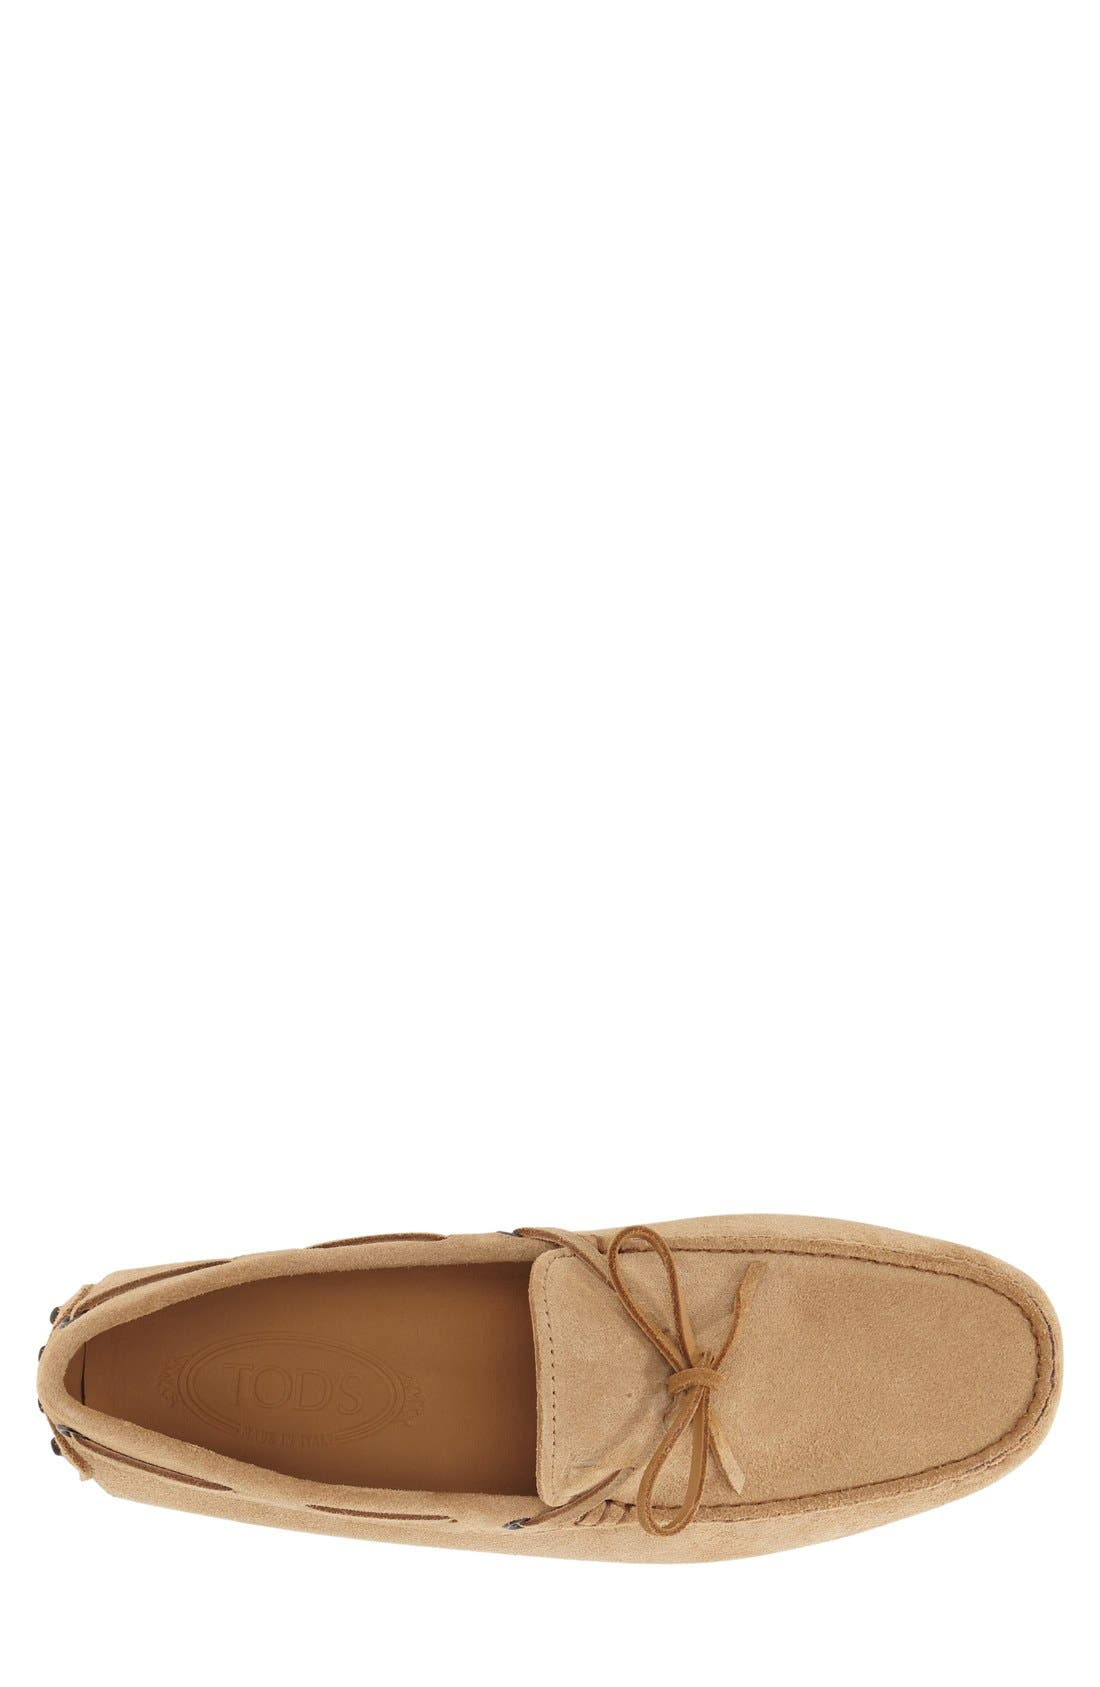 Gommini Tie Front Driving Moccasin,                             Alternate thumbnail 53, color,